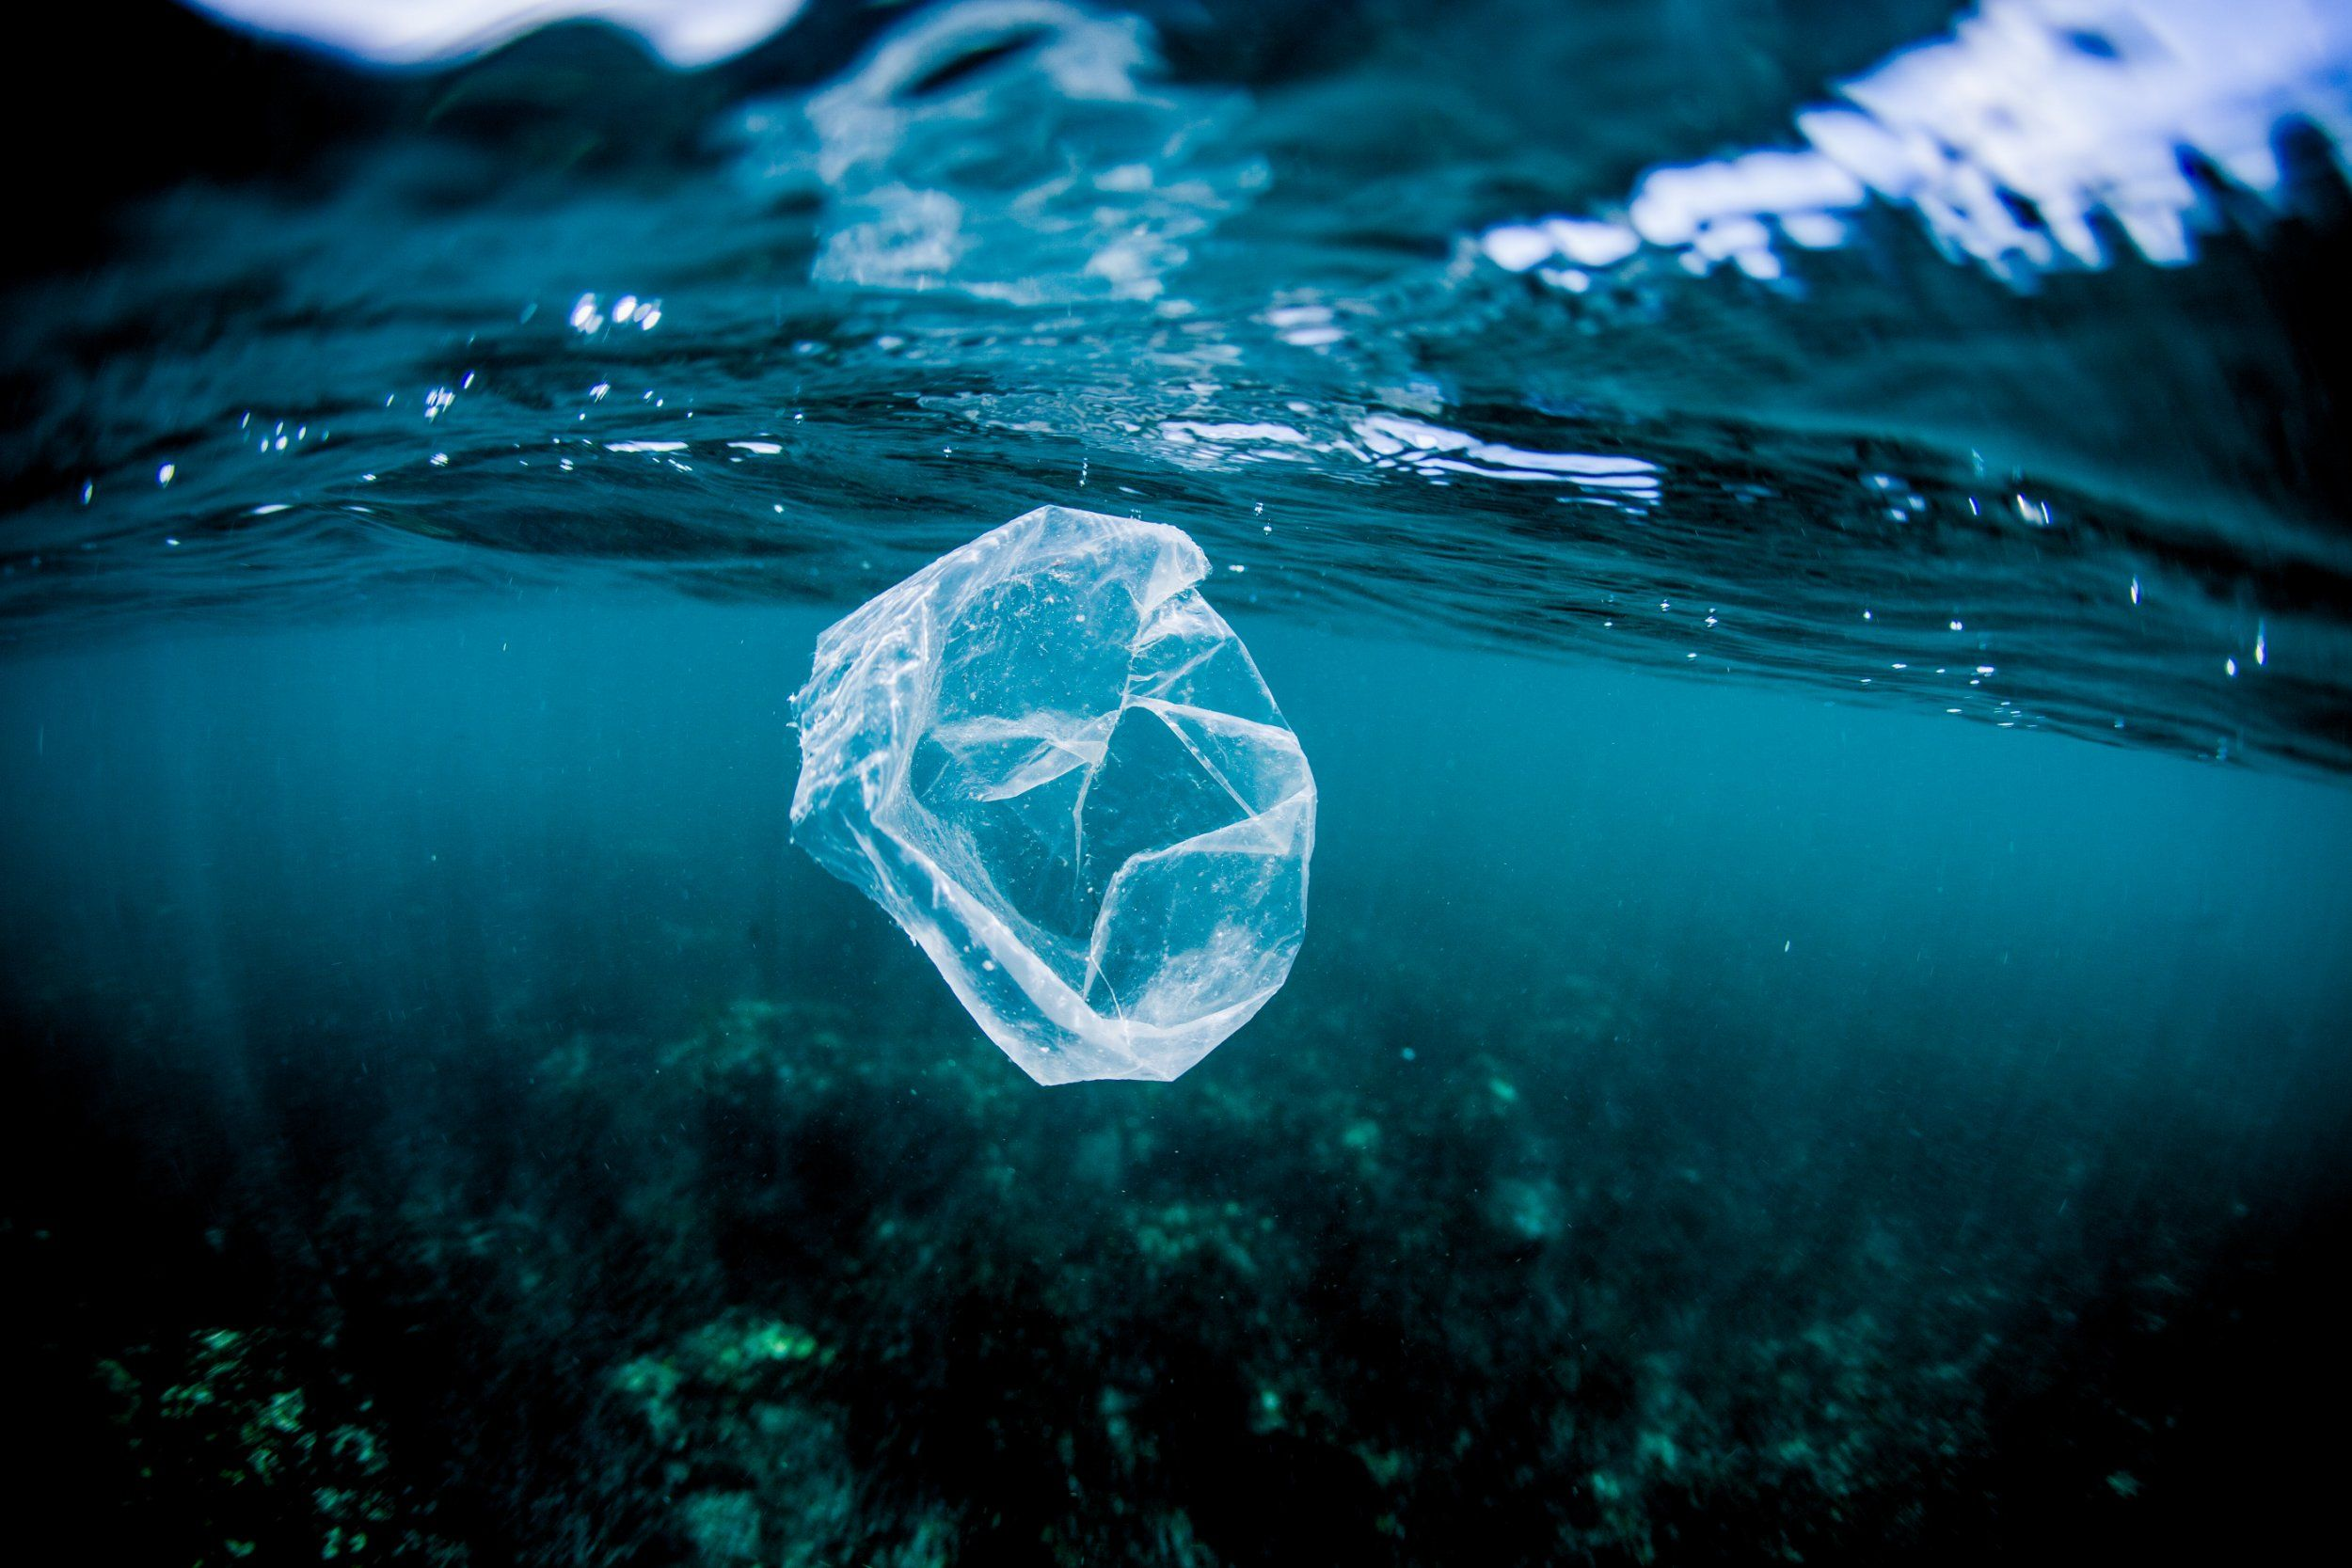 Plastic bags in the ocean